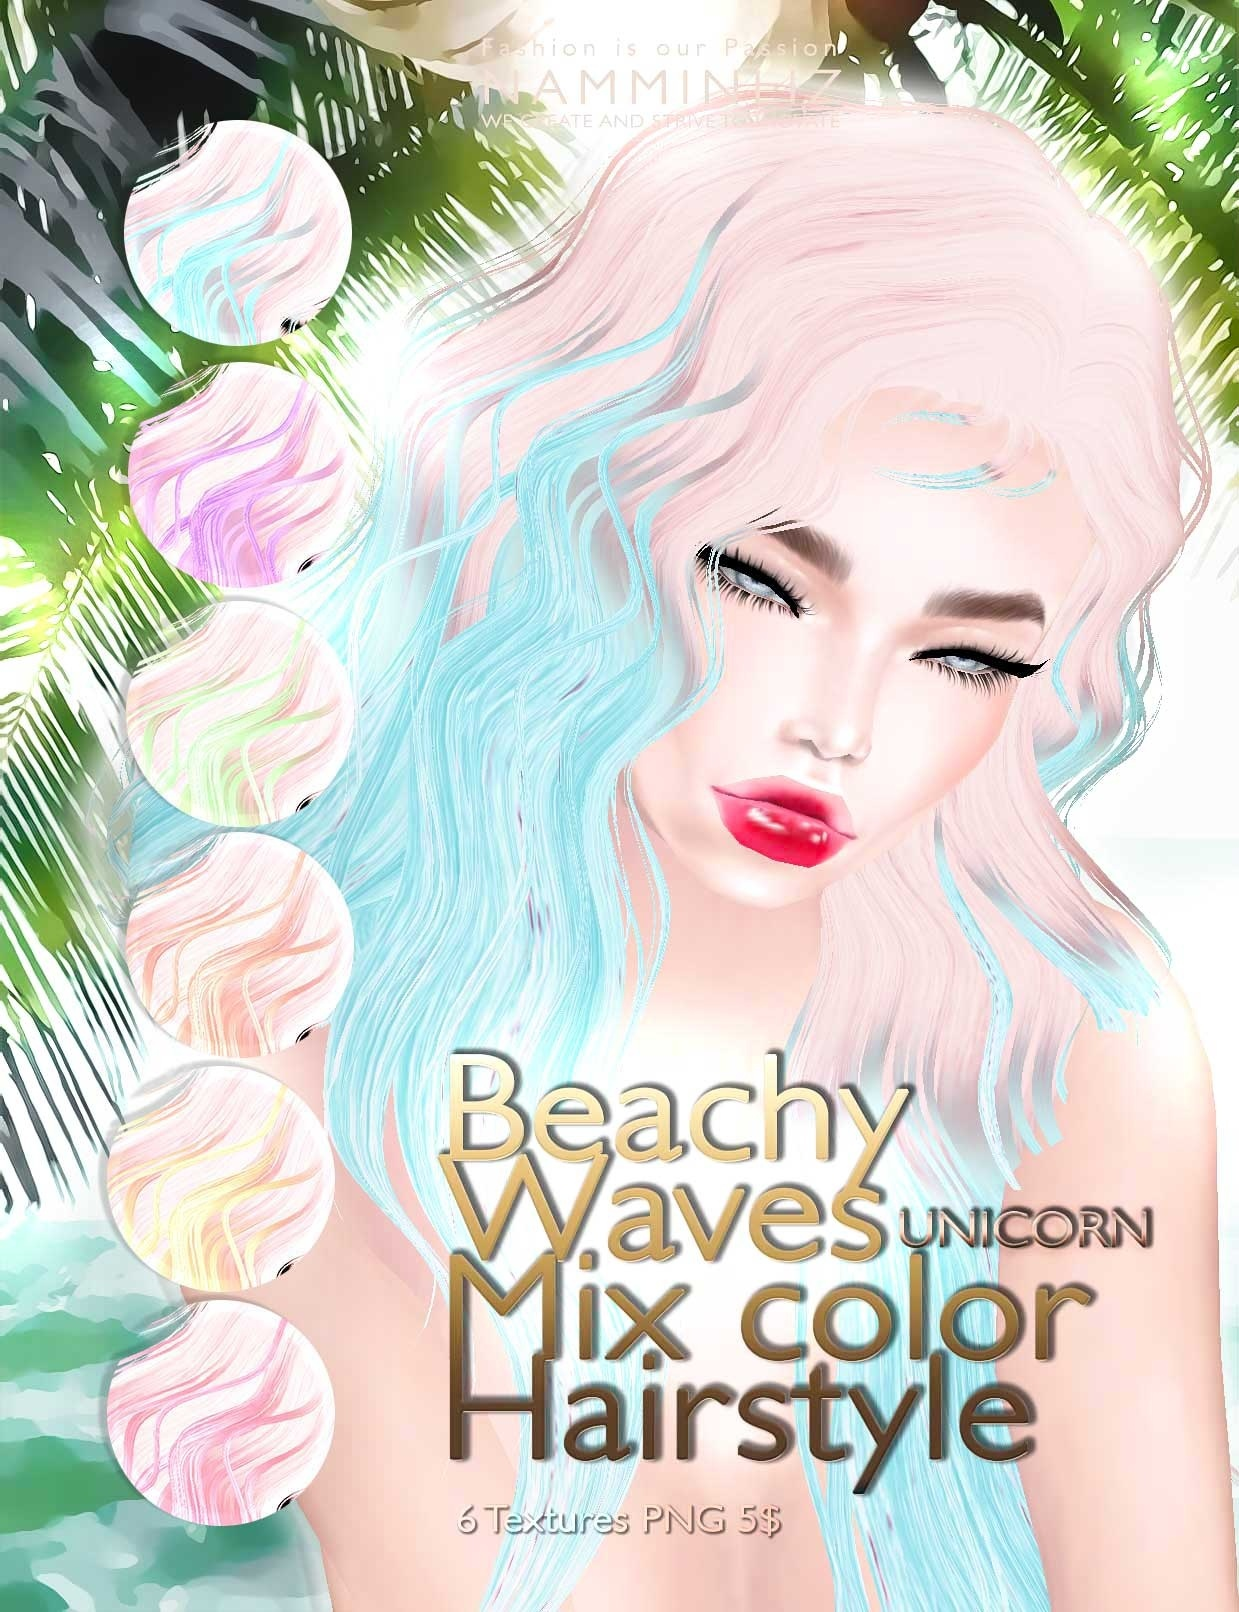 Beachy waves mixc color hairstyle •Full 18 imvu hair texture PNG